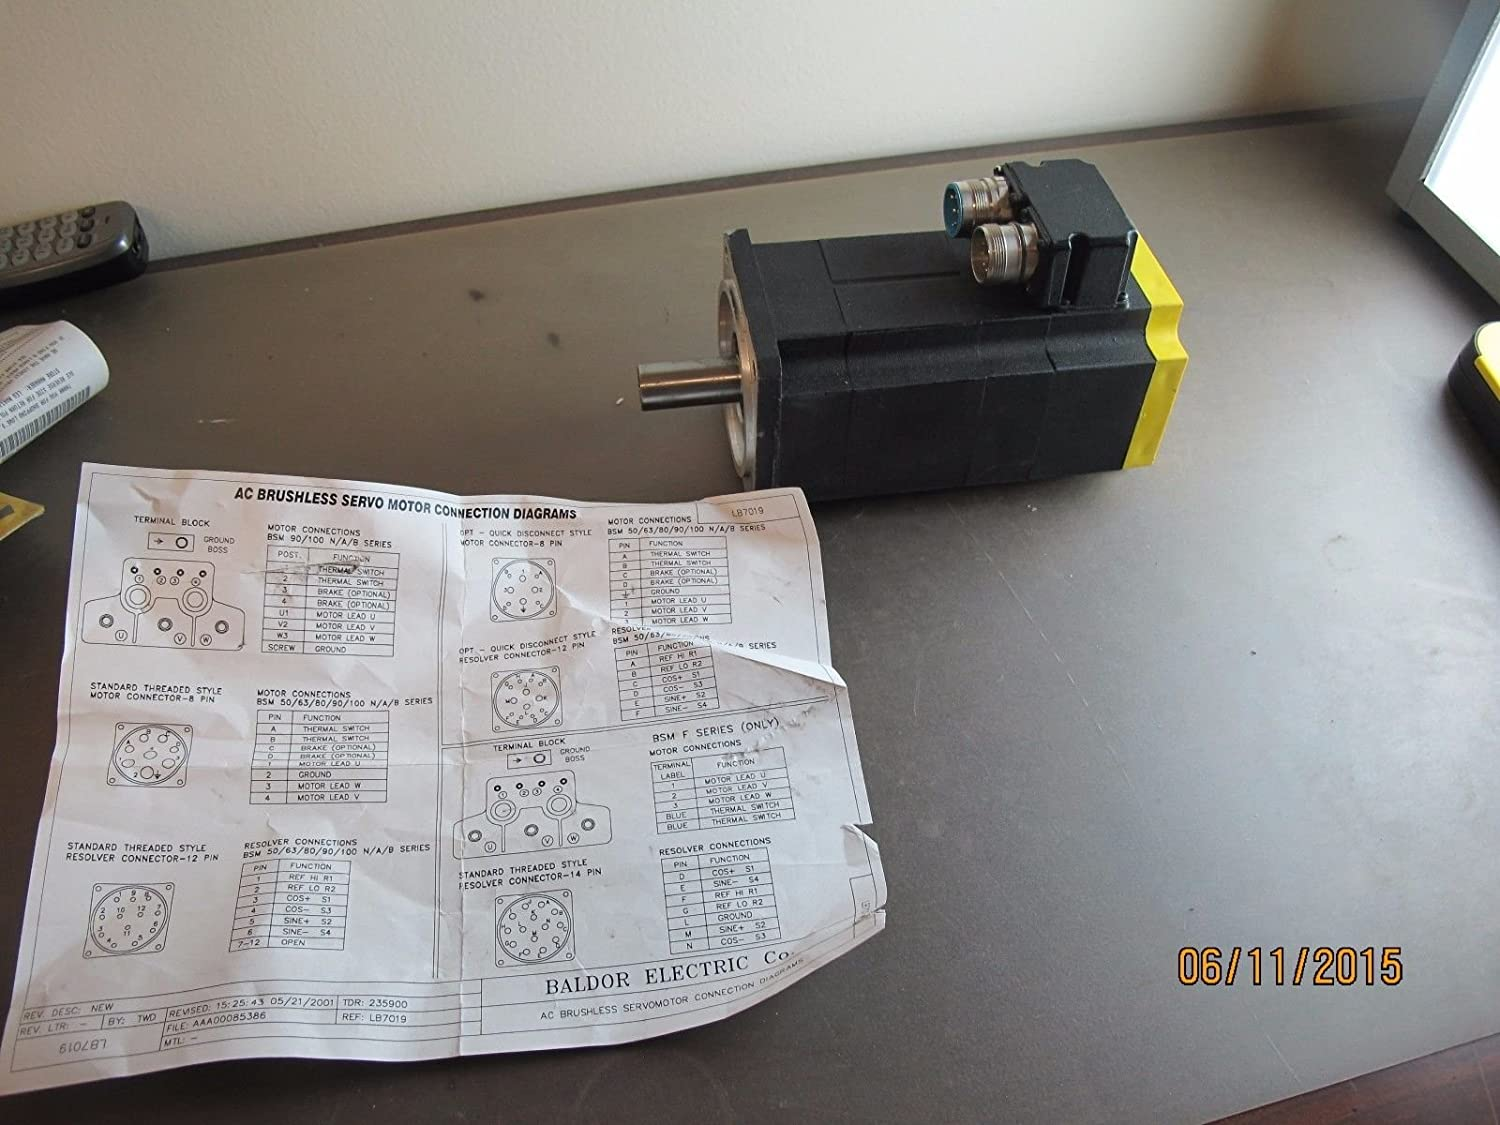 Baldor Brushless Ac Servo Motor Bsm80c 250aa Disconnect Electrical Connection Diagram Industrial Scientific